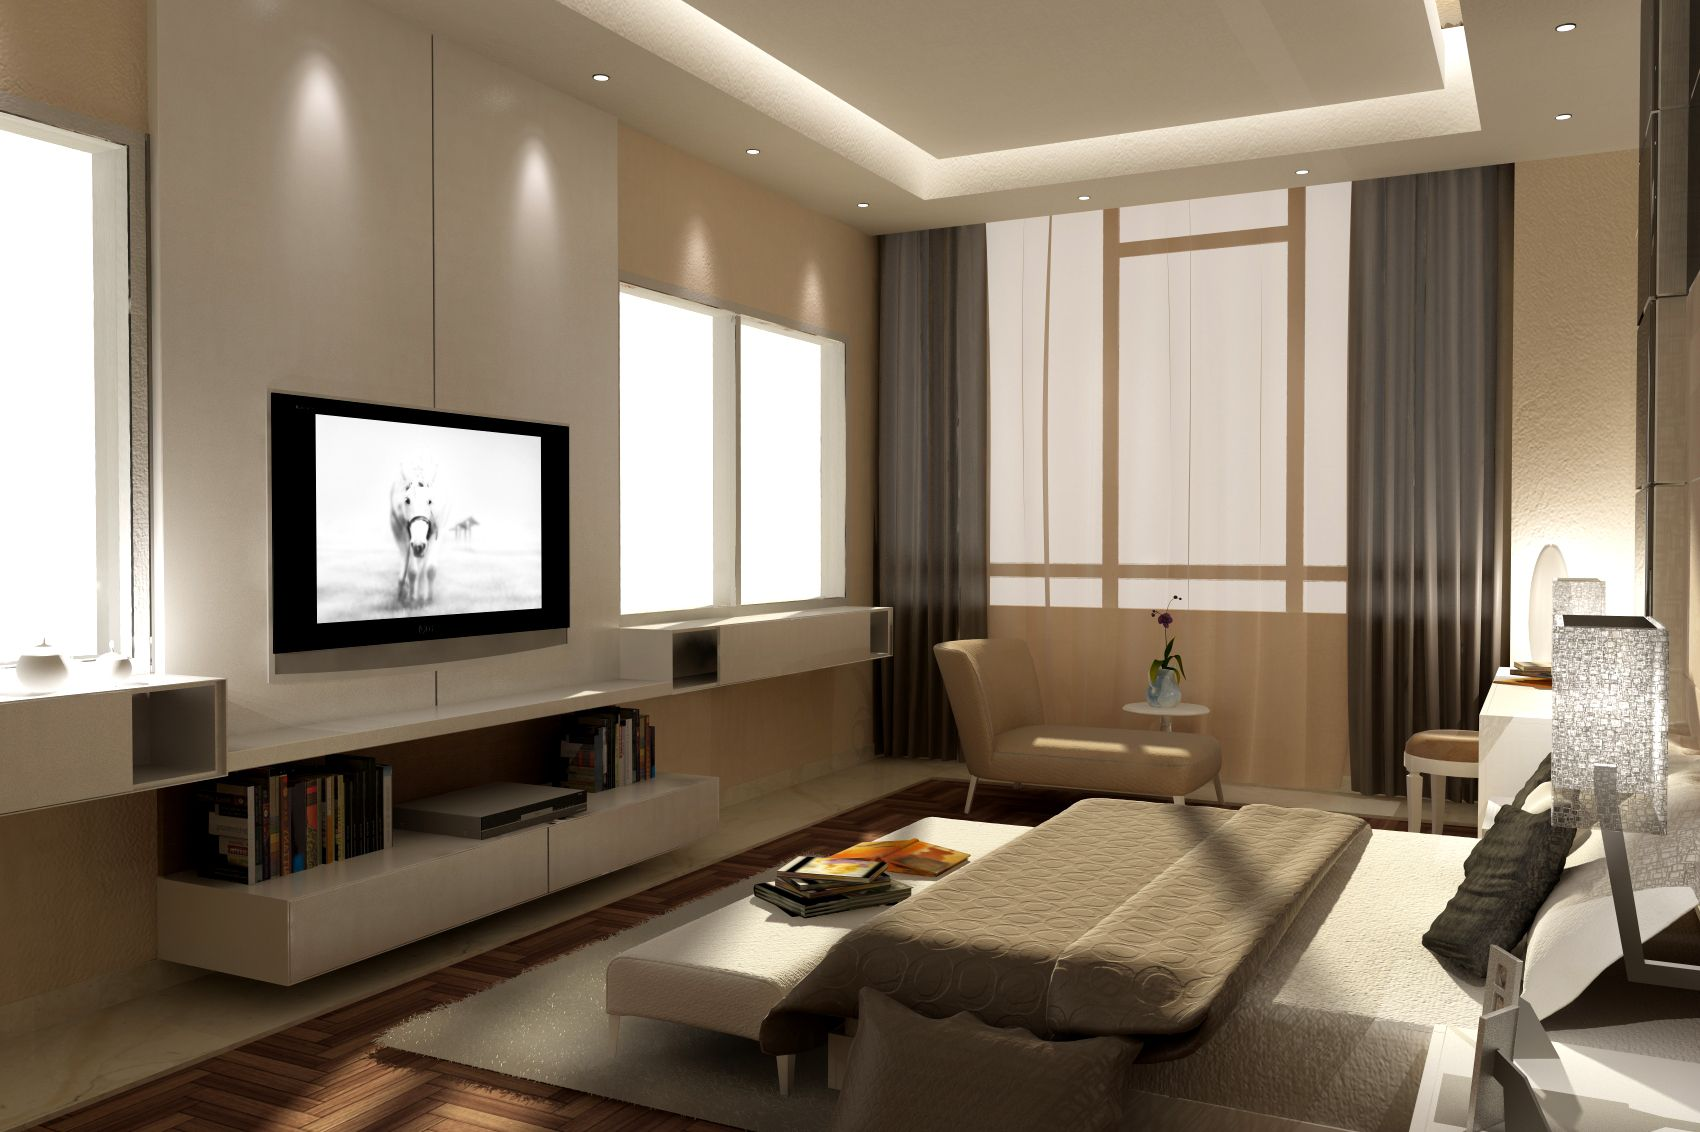 Bedroom modern bedroom interior design 3d max 3d for Contemporary interior designer